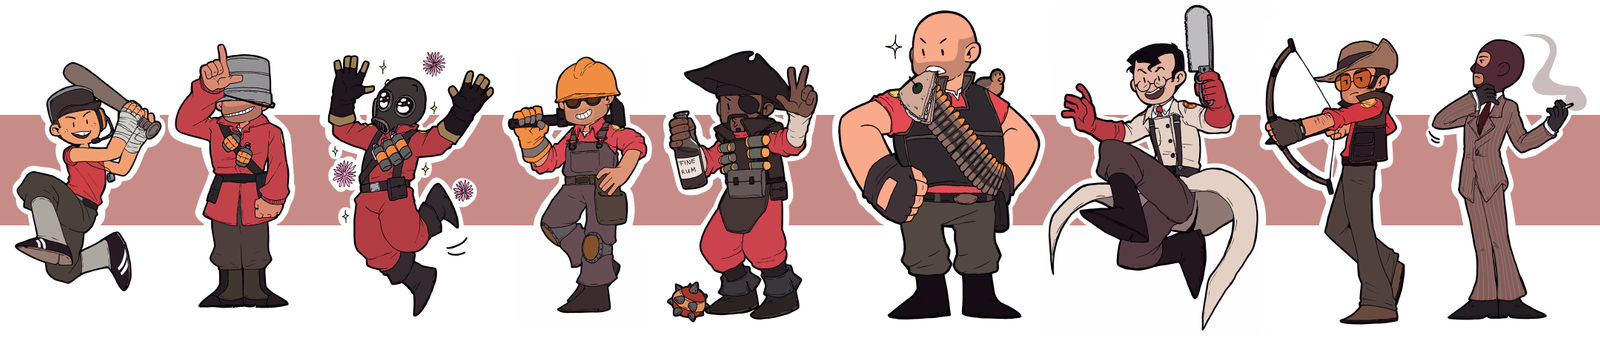 TF2 - The mercs - RED -